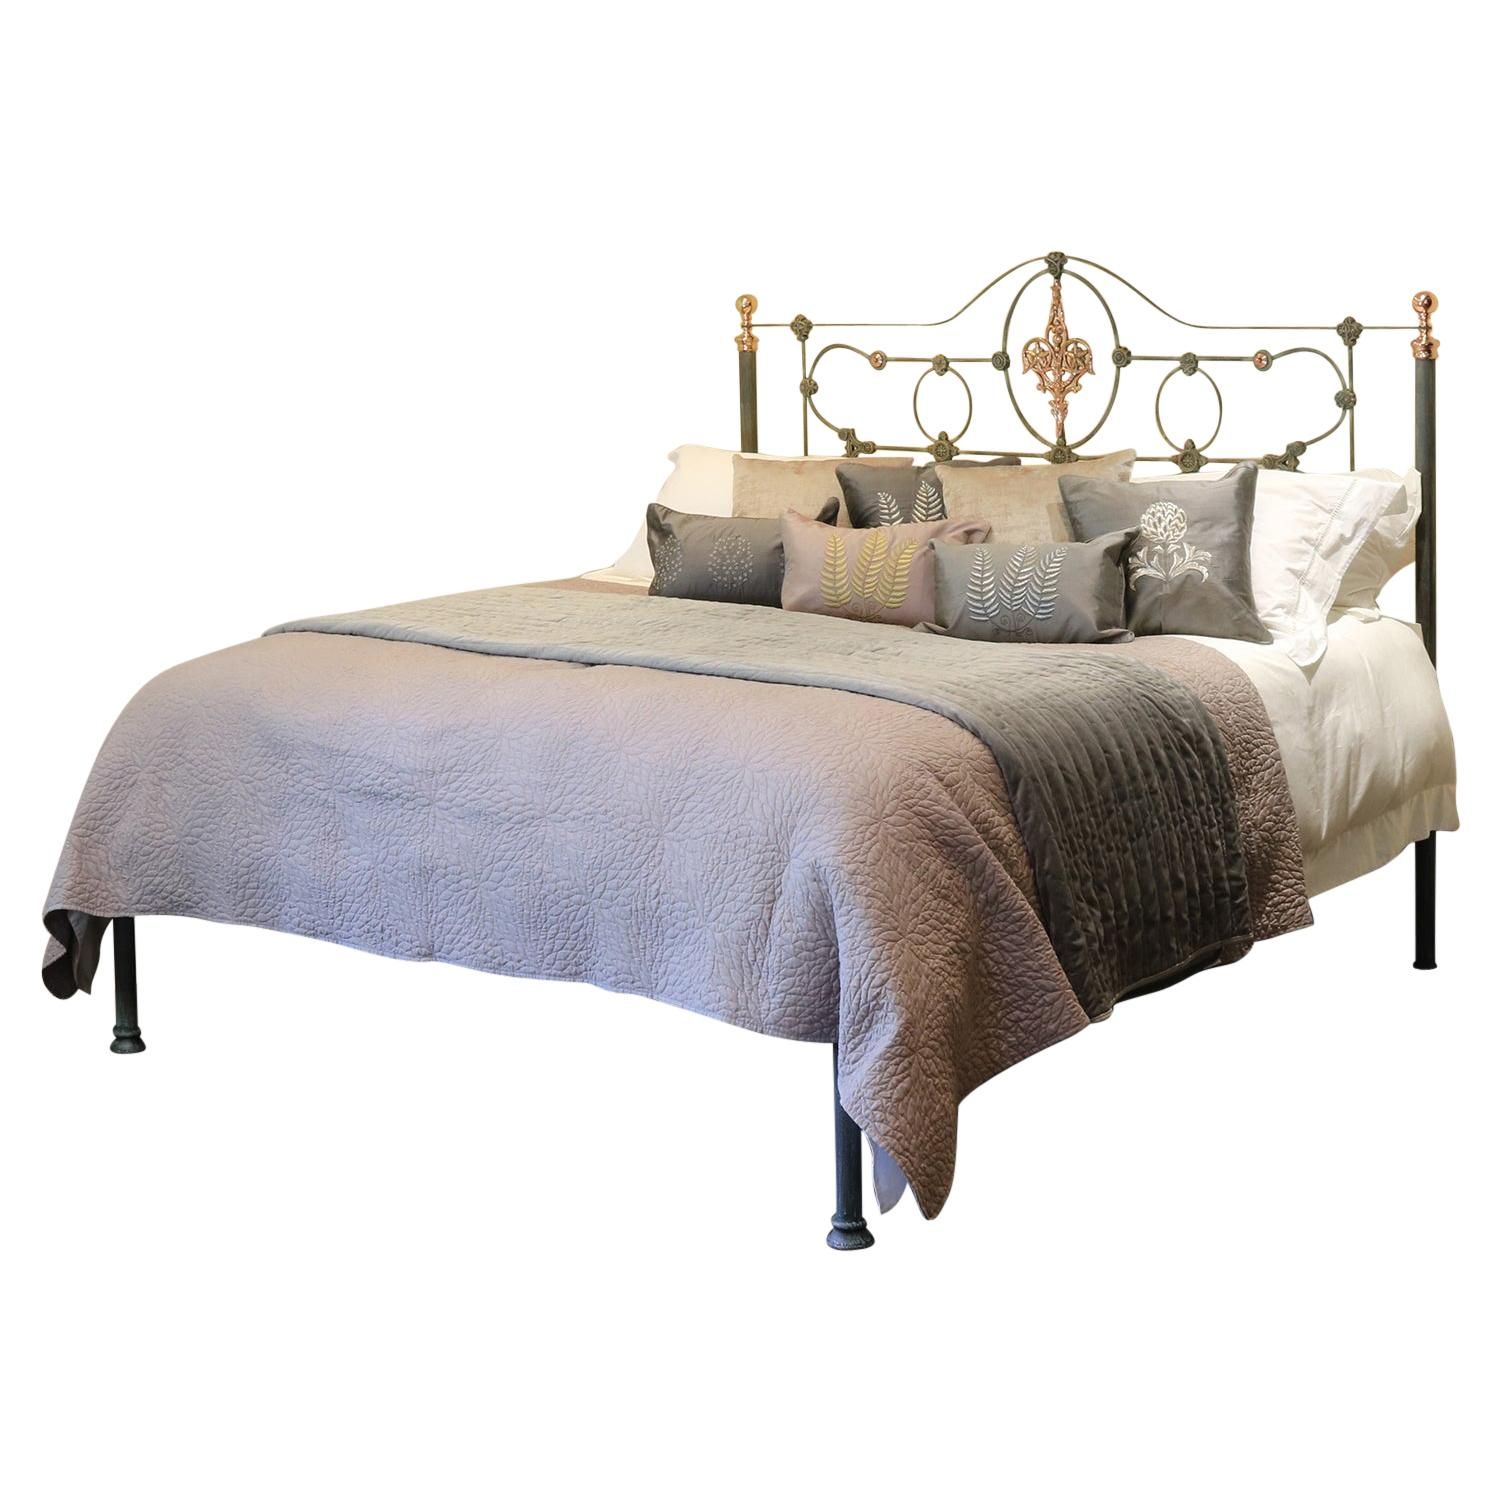 Cast Iron Antique Bed with Copper MSK68